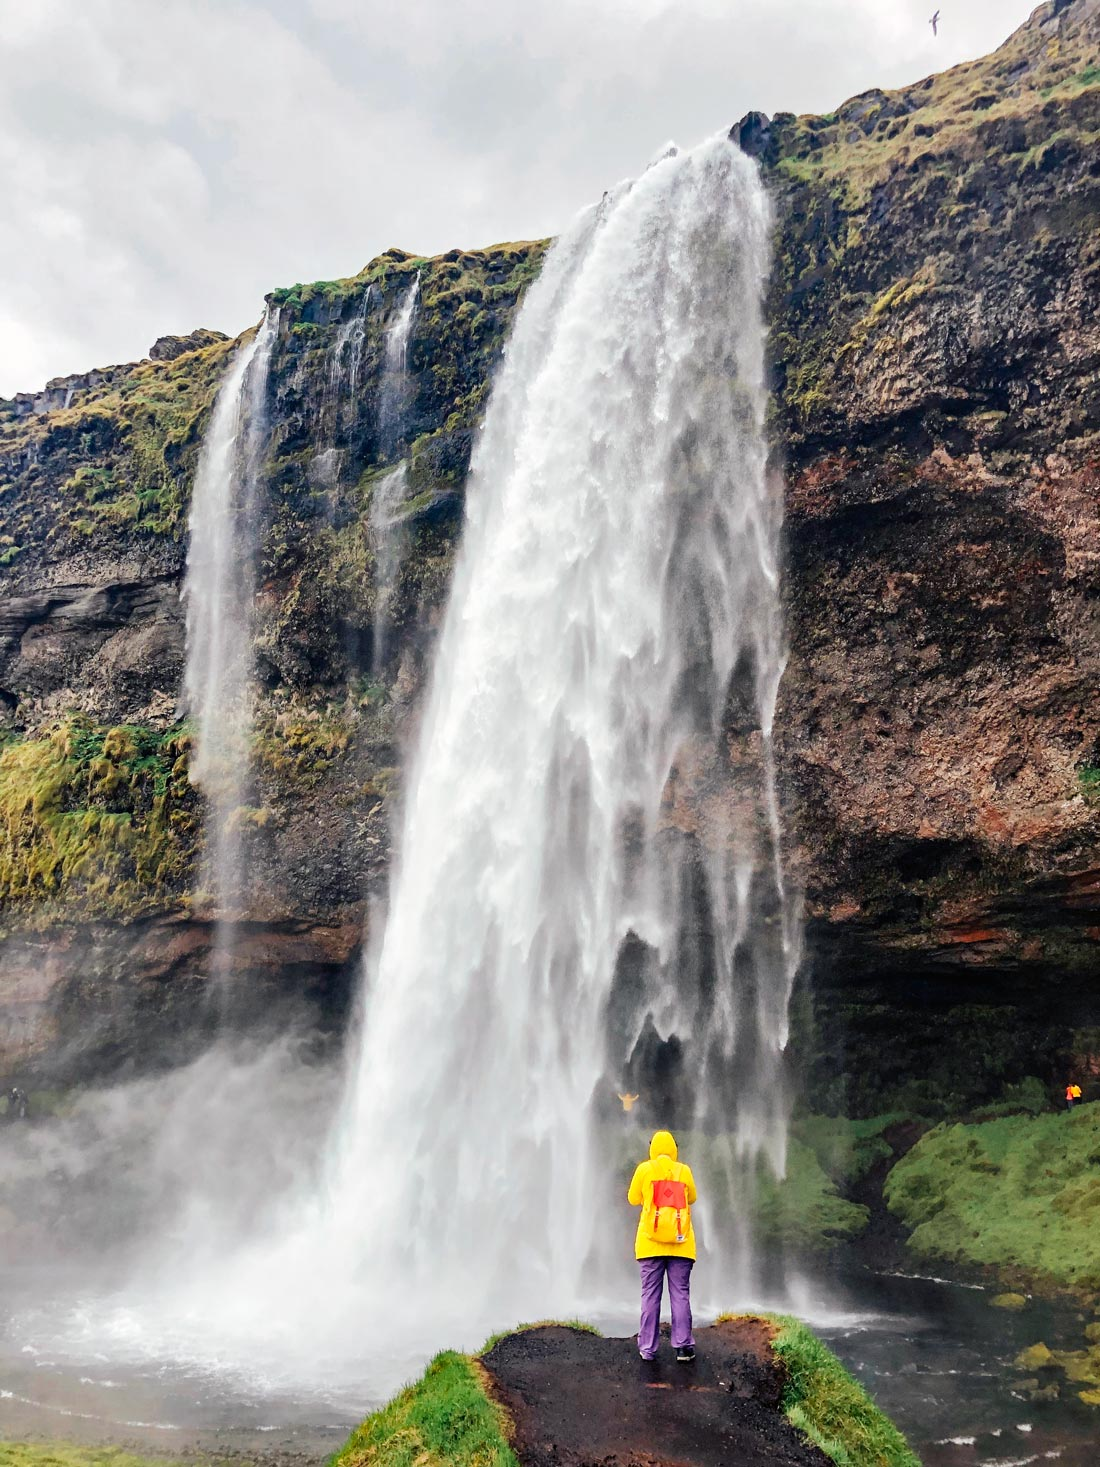 Woman in a yellow raincoat standing in front of the Seljalandsfoss waterfall